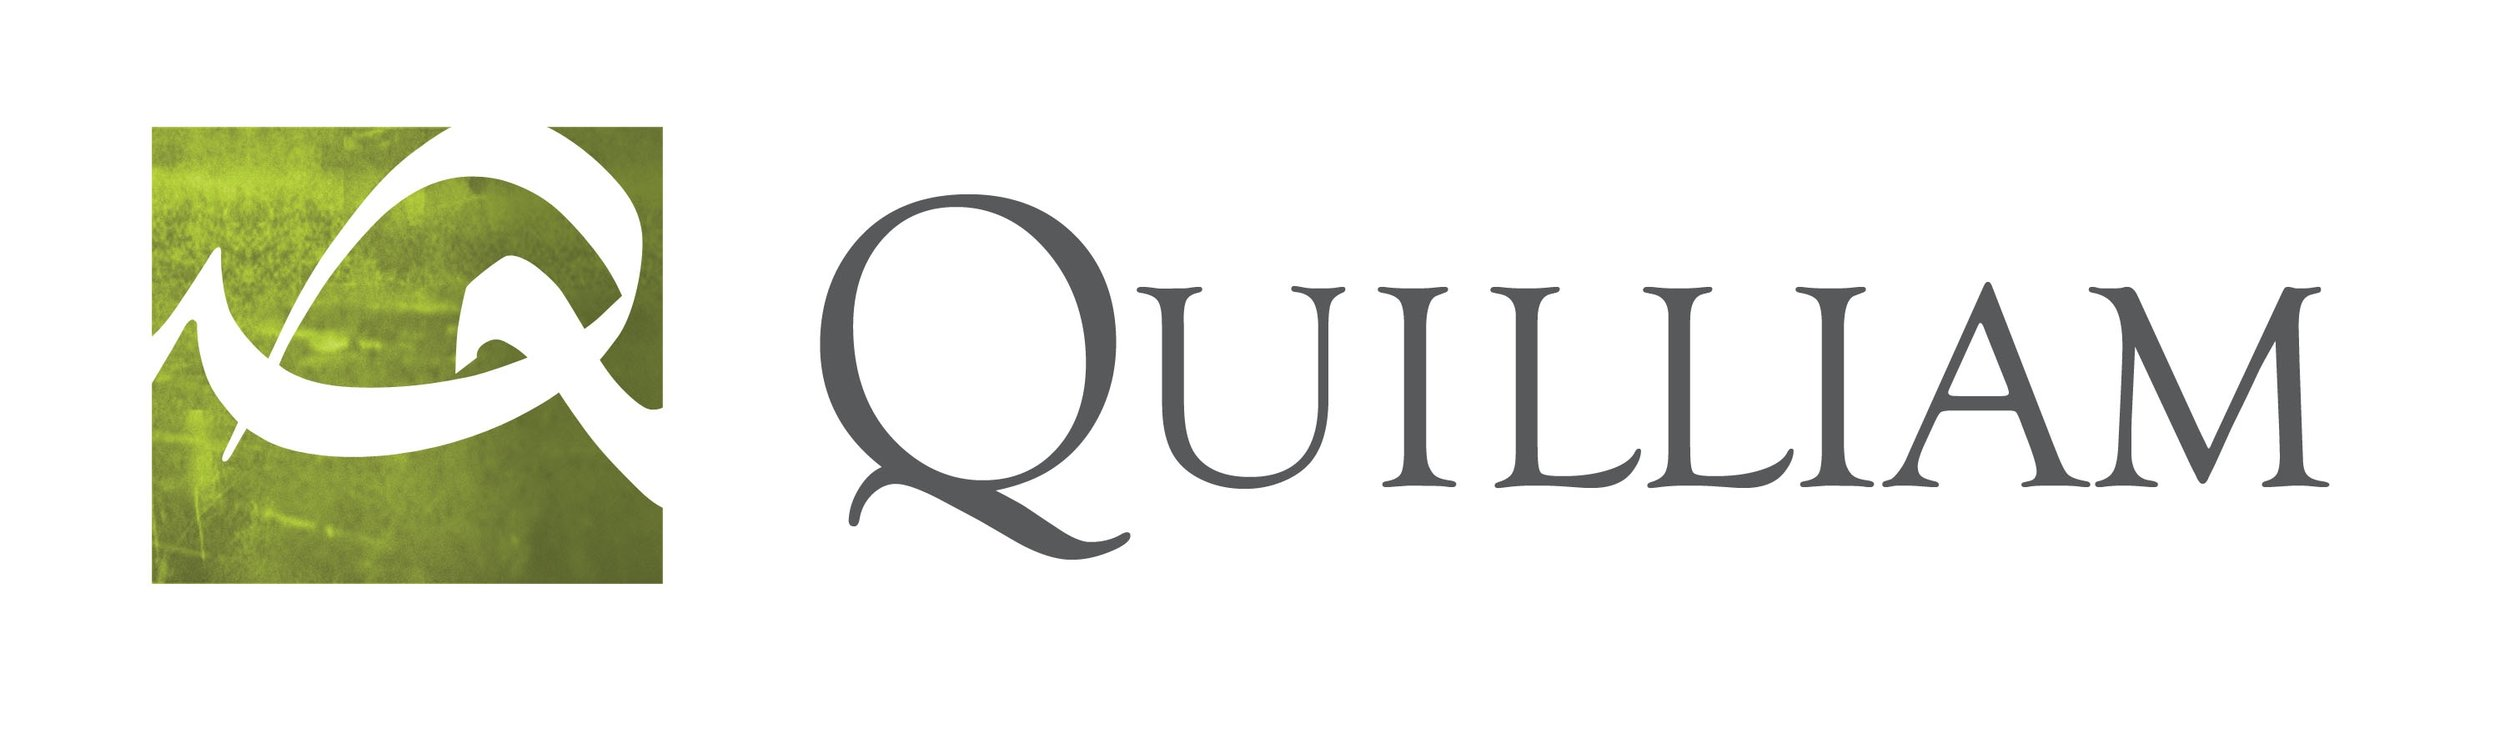 Quilliam Foundation